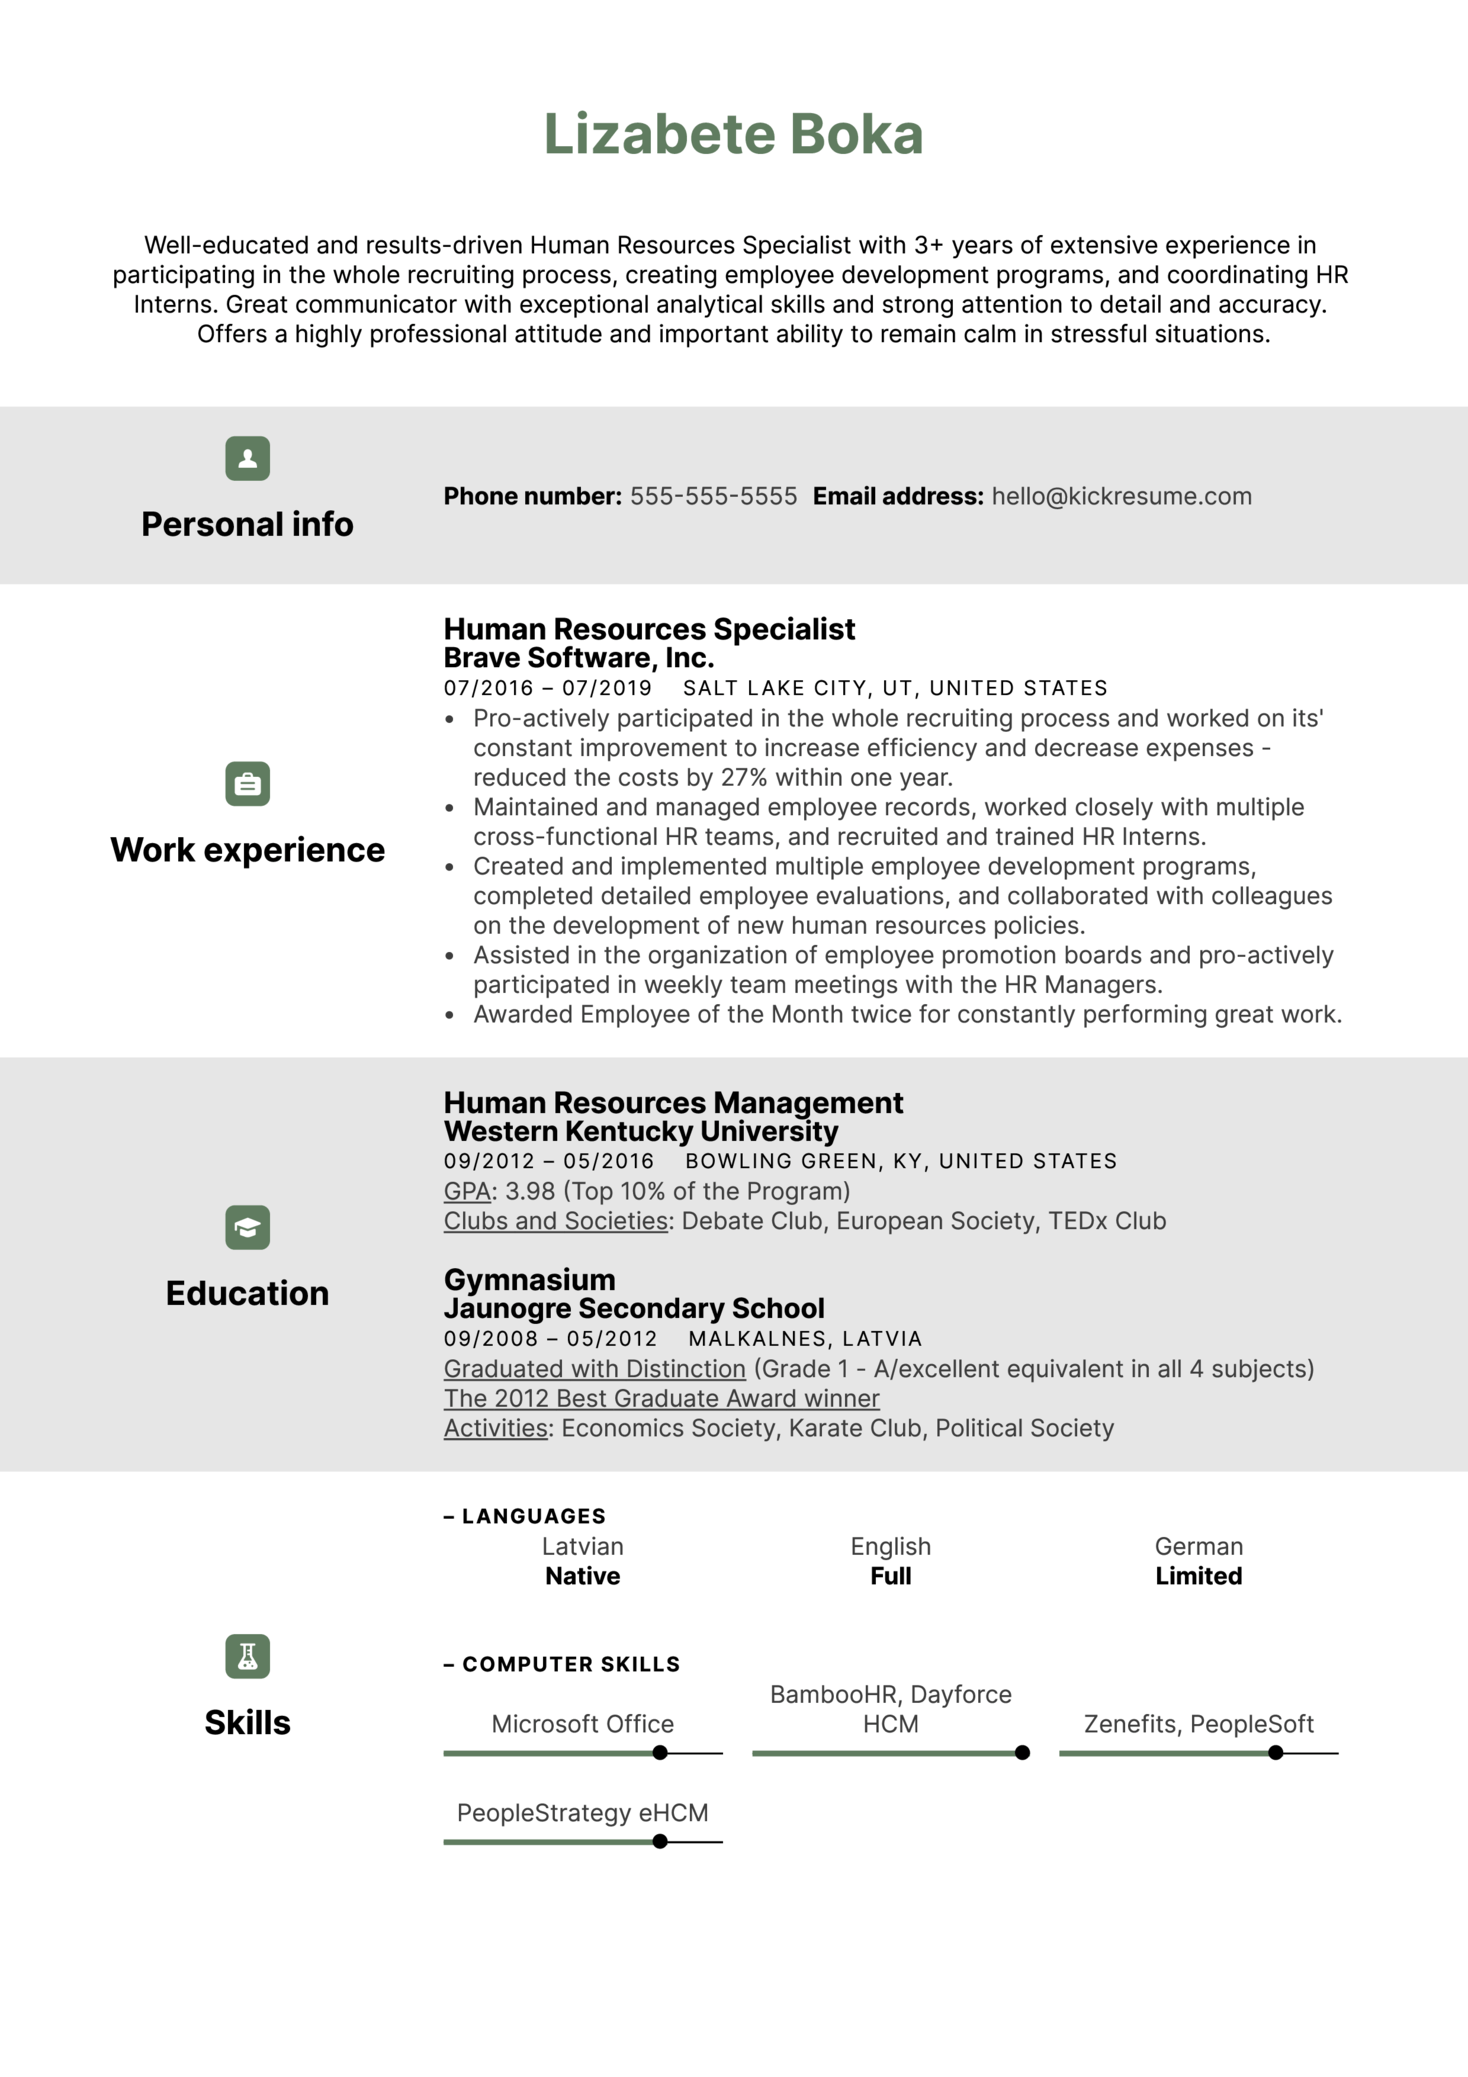 Human Resources Specialist Resume Example (parte 1)